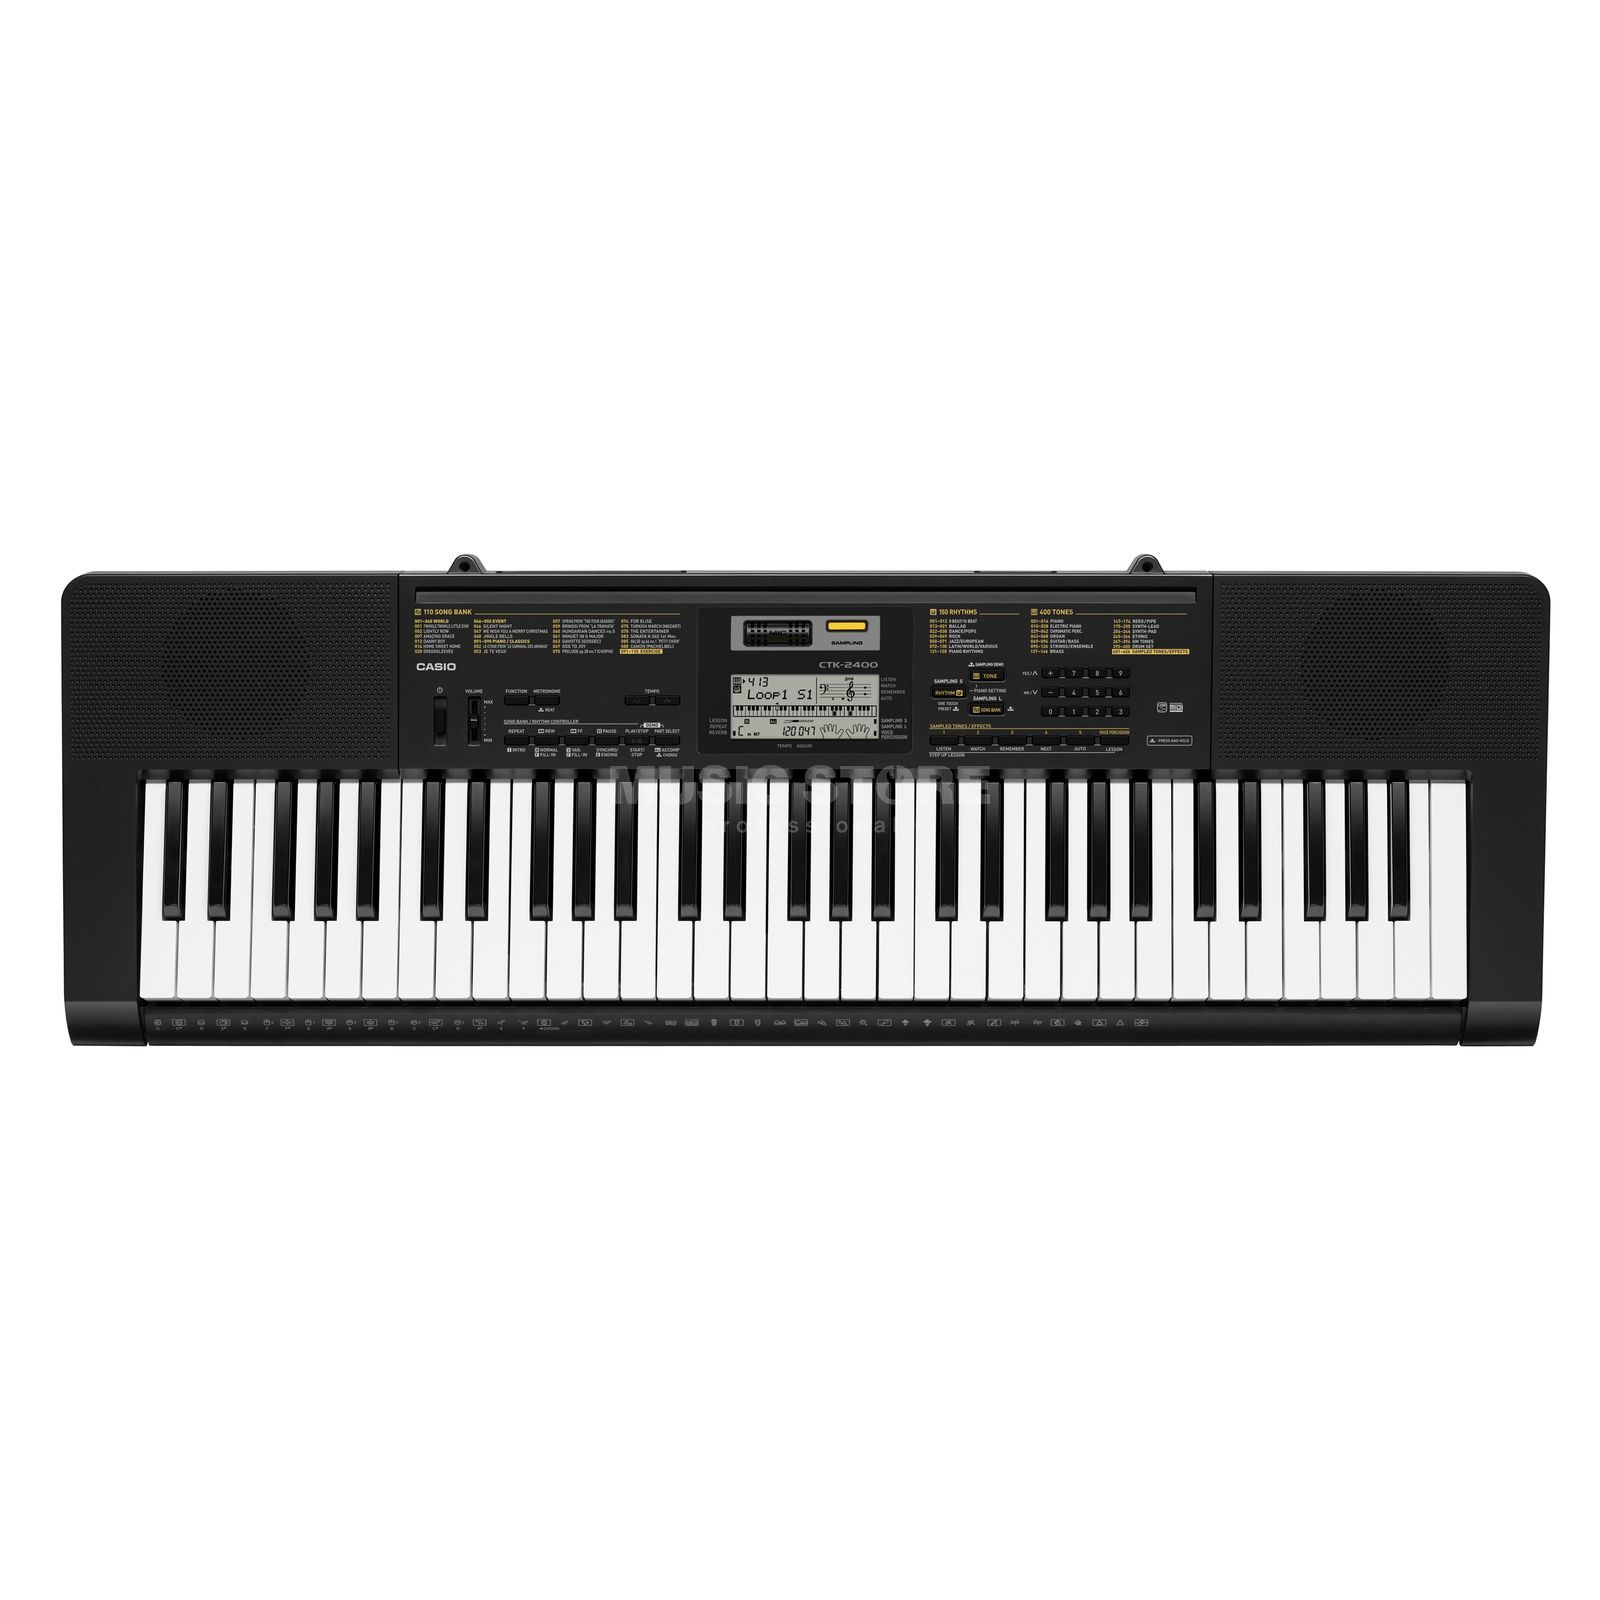 Casio CTK-2400 Digital Keyboard Produktbillede